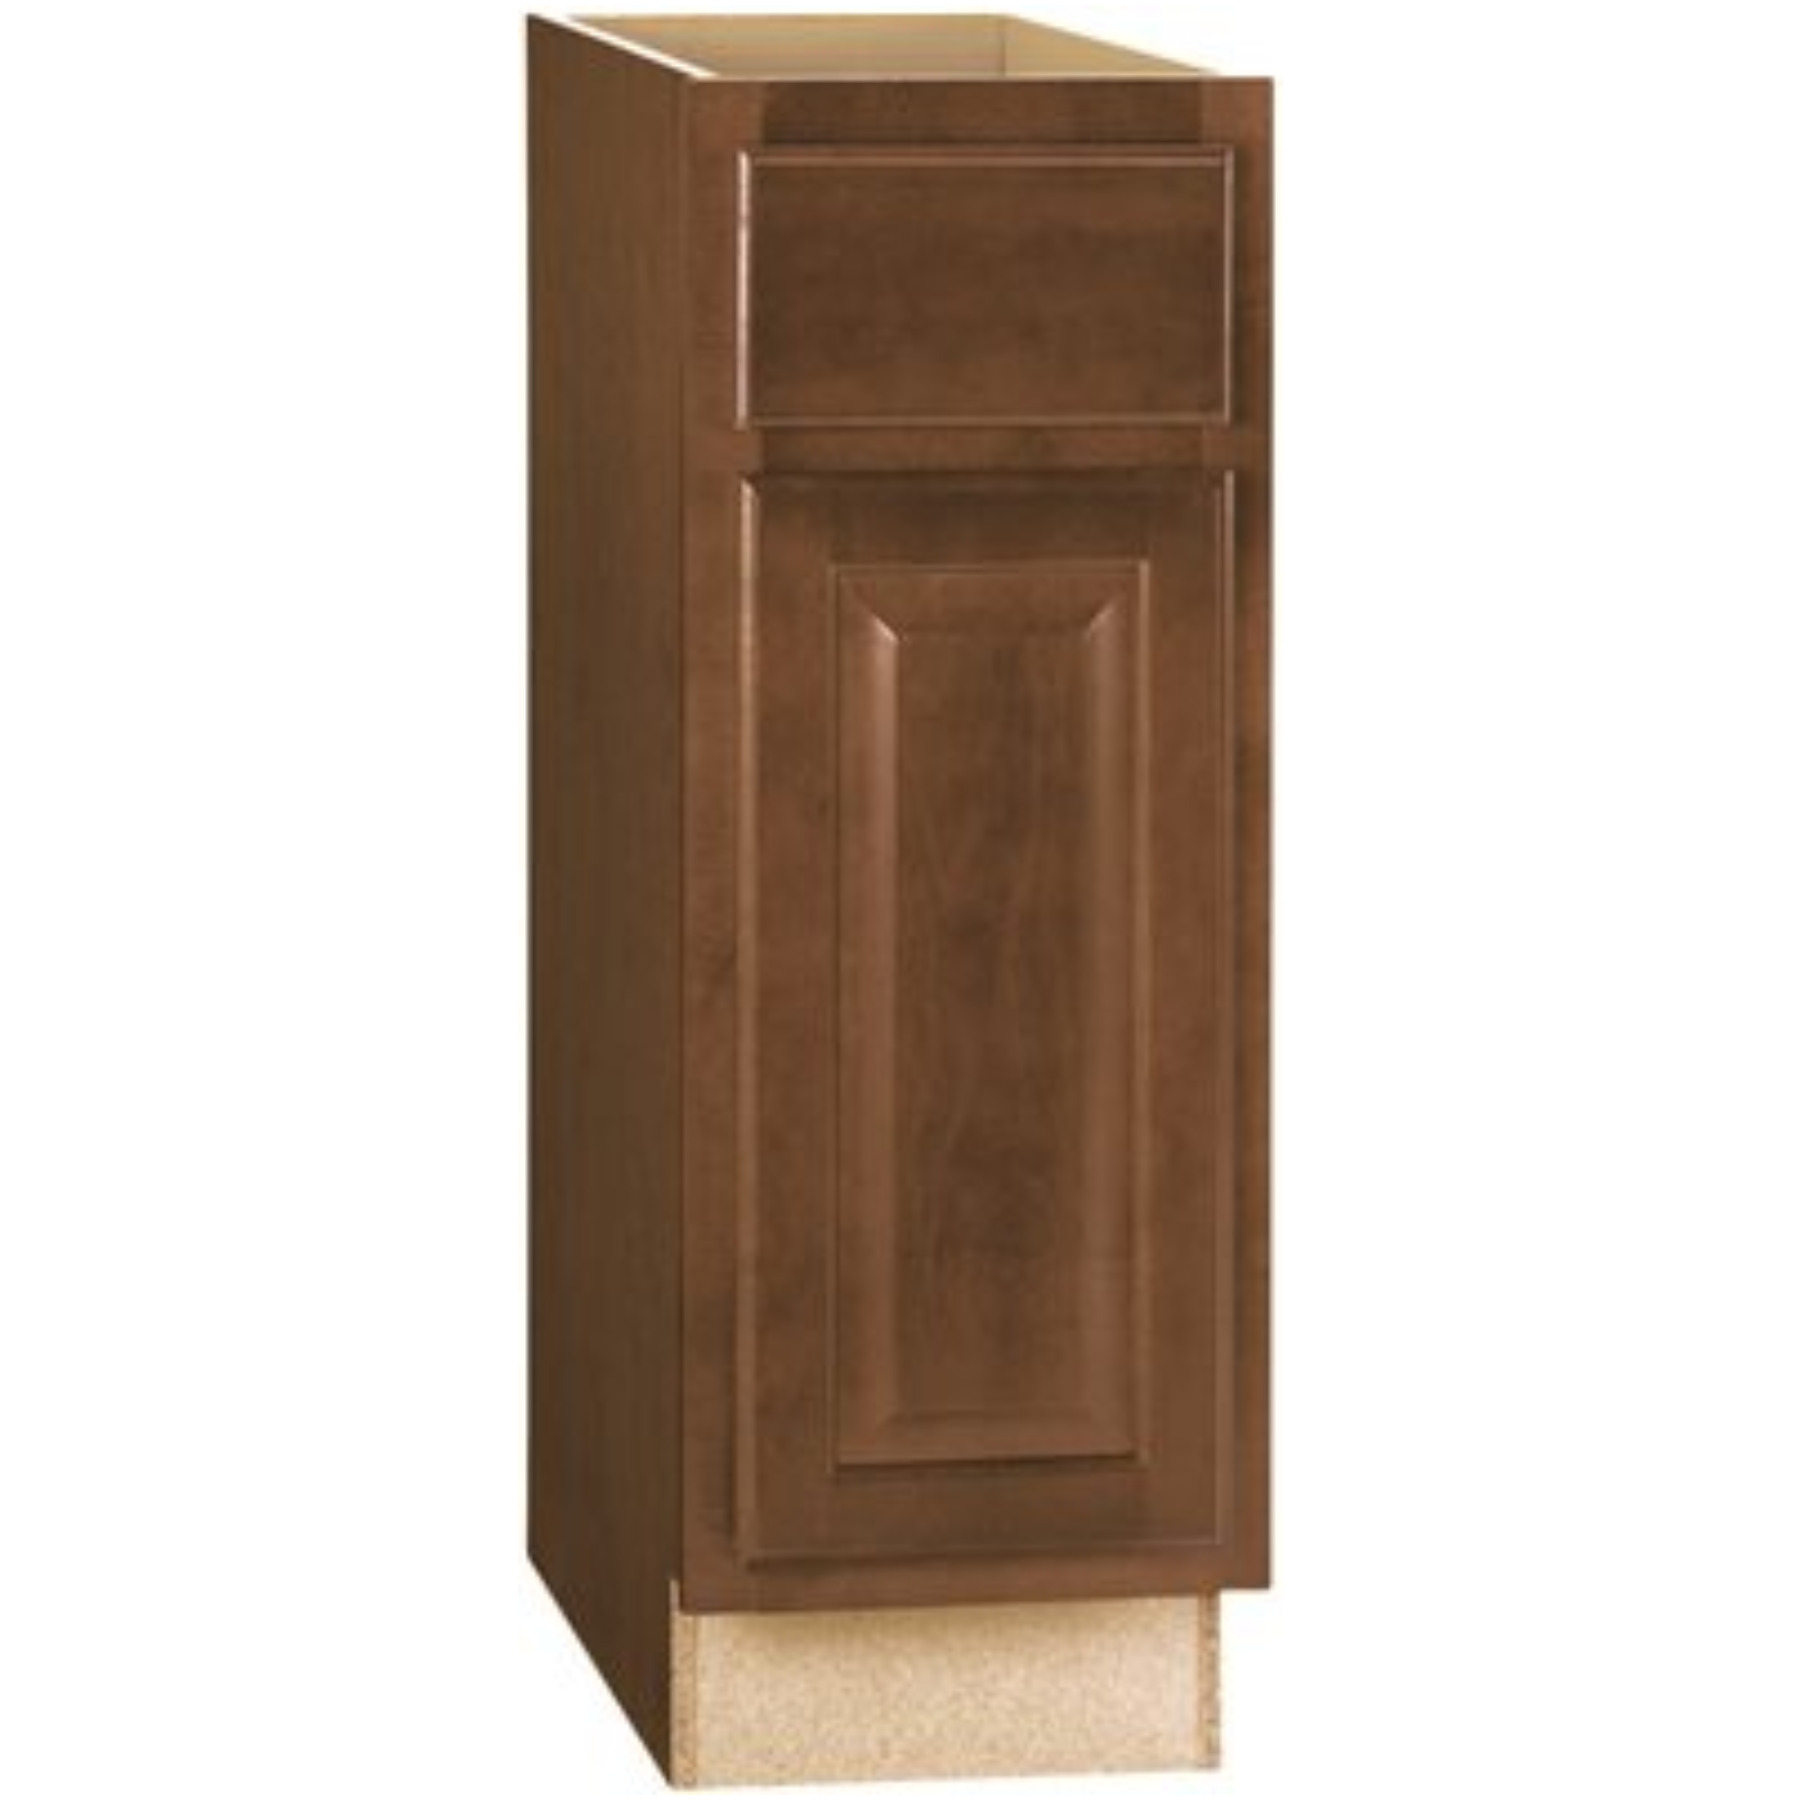 RSI HOME PRODUCTS HAMILTON BASE CABINET, FULLY ASSEMBLED, RAISED PANEL, CAFE, 9X34-1/2X24 IN.